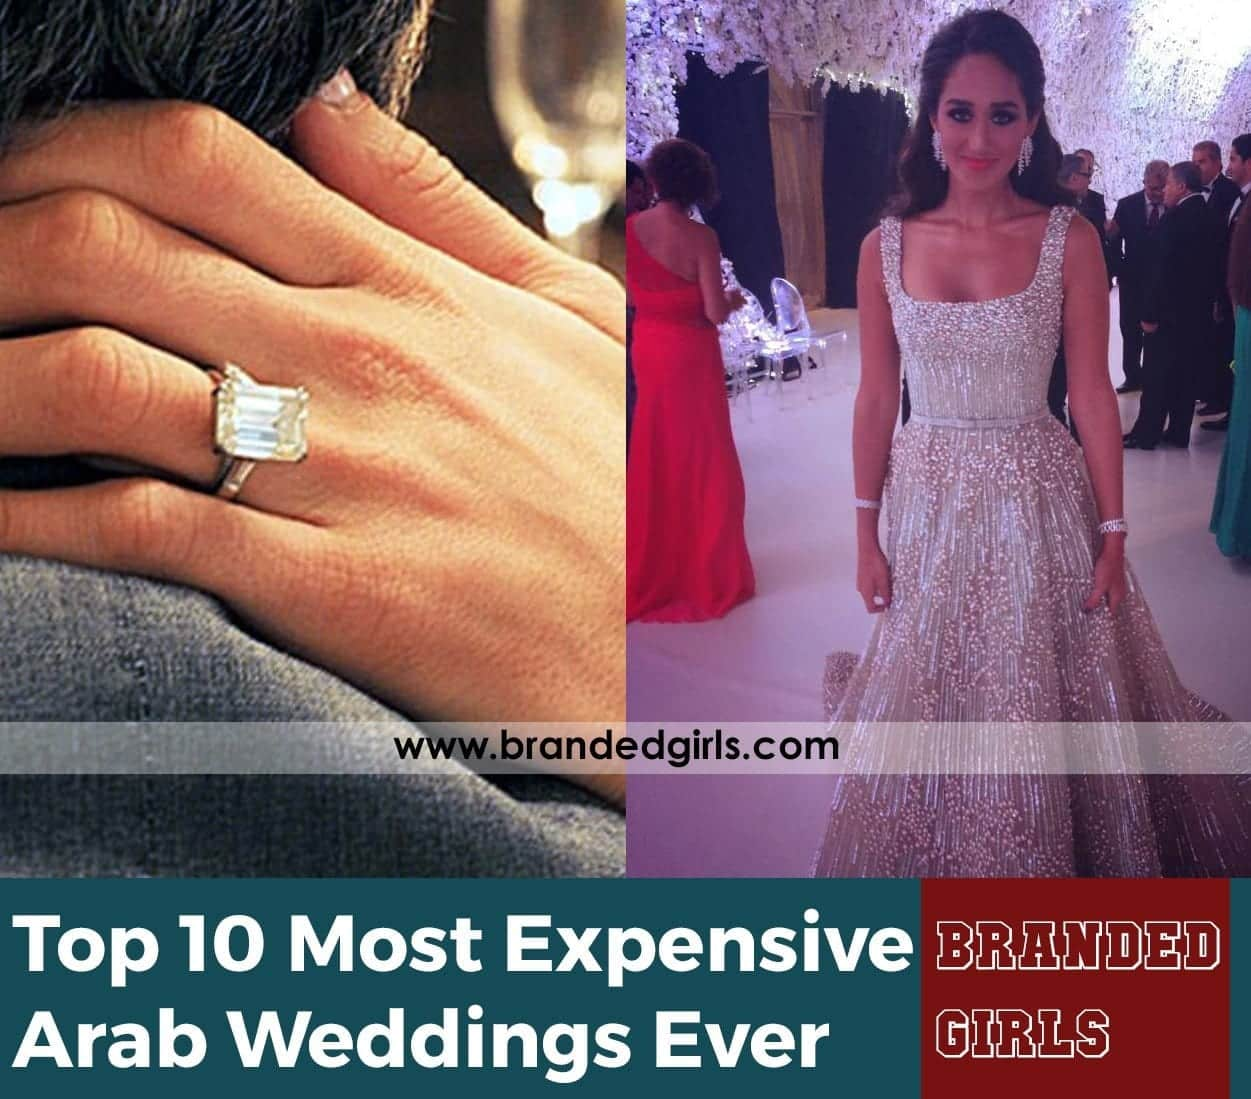 polyvore-sample-6 Top 10 Most Expensive Arab Weddings of All The Time